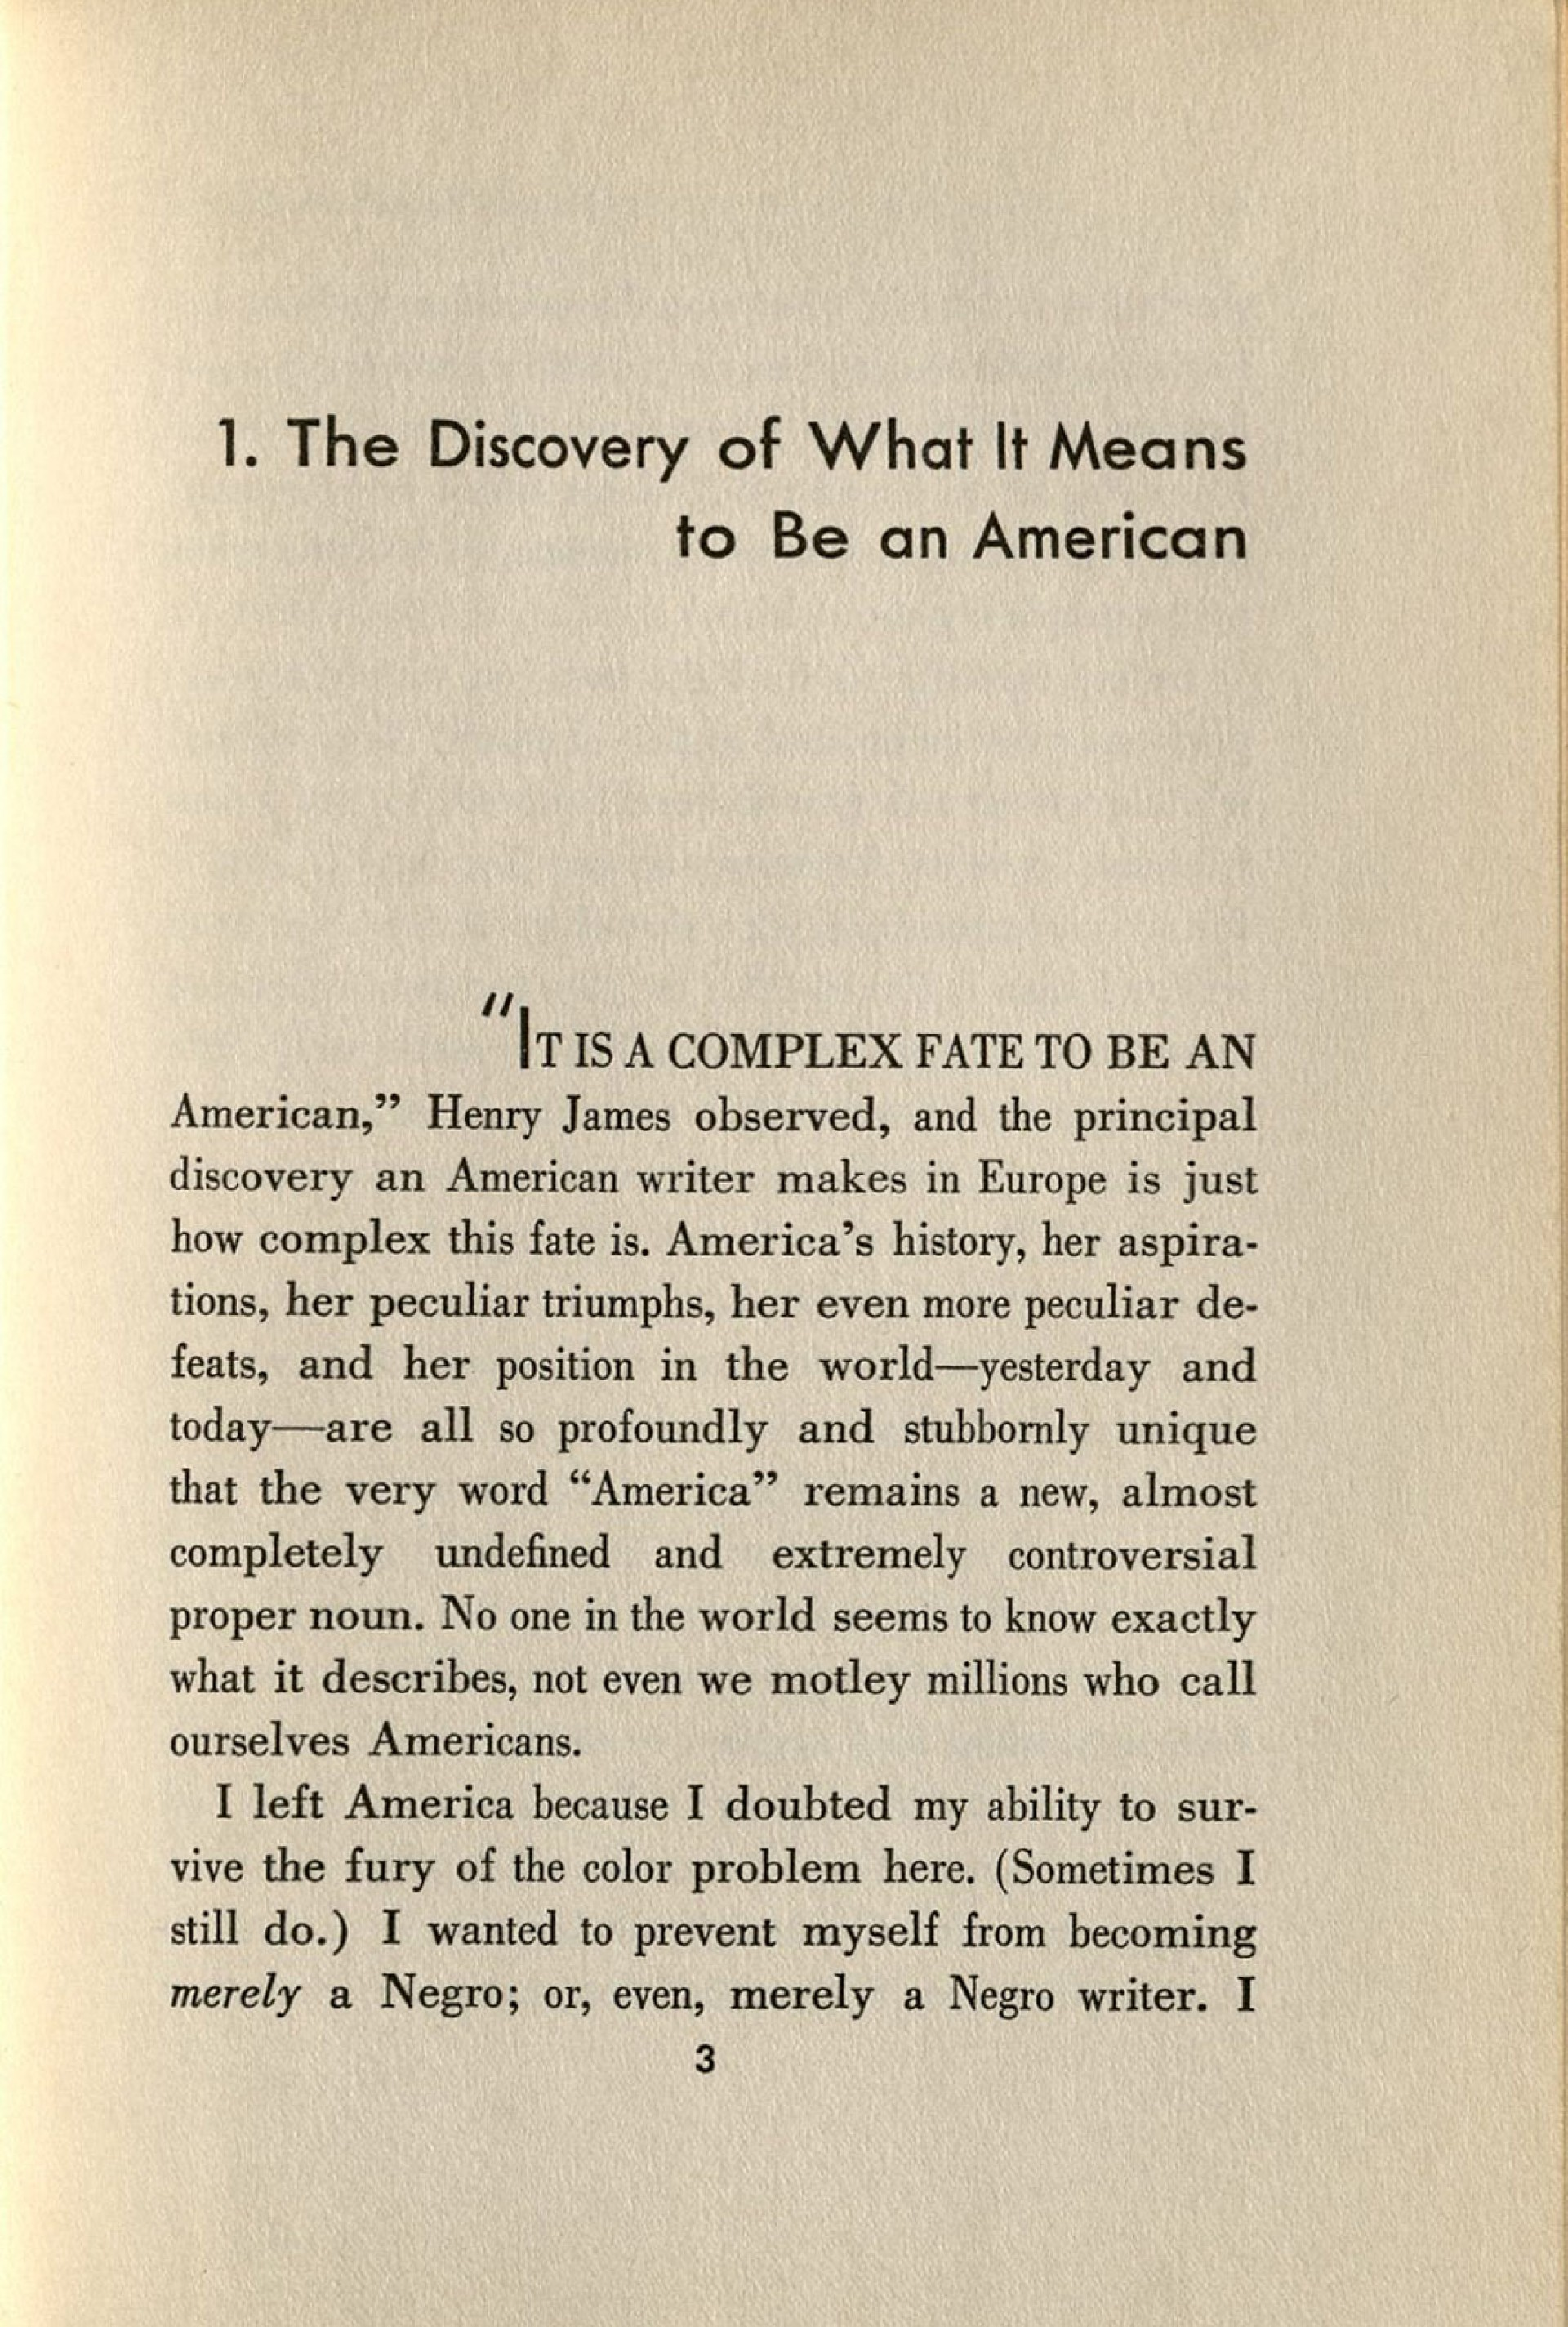 002 Nobodyknows 2 Essay Example James Baldwin Singular Essays Notes Of A Native Son Collected Pdf Analysis 1920